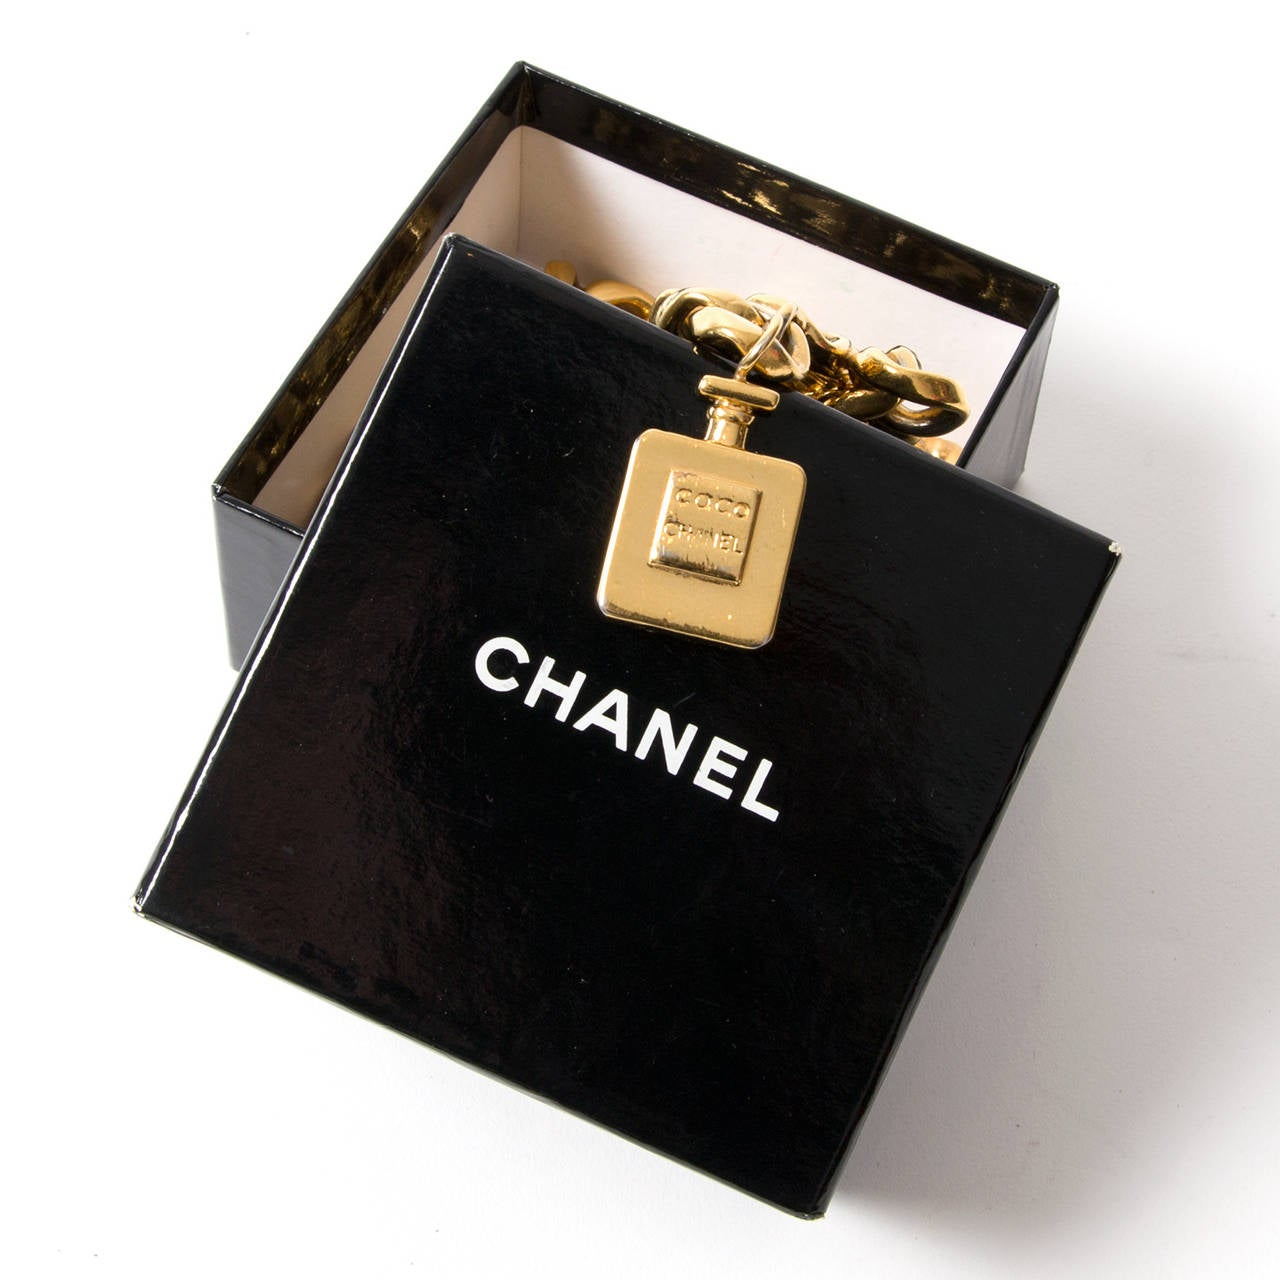 Chanel Gold Parfum Chain Belt In Excellent Condition For Sale In Antwerp, BE